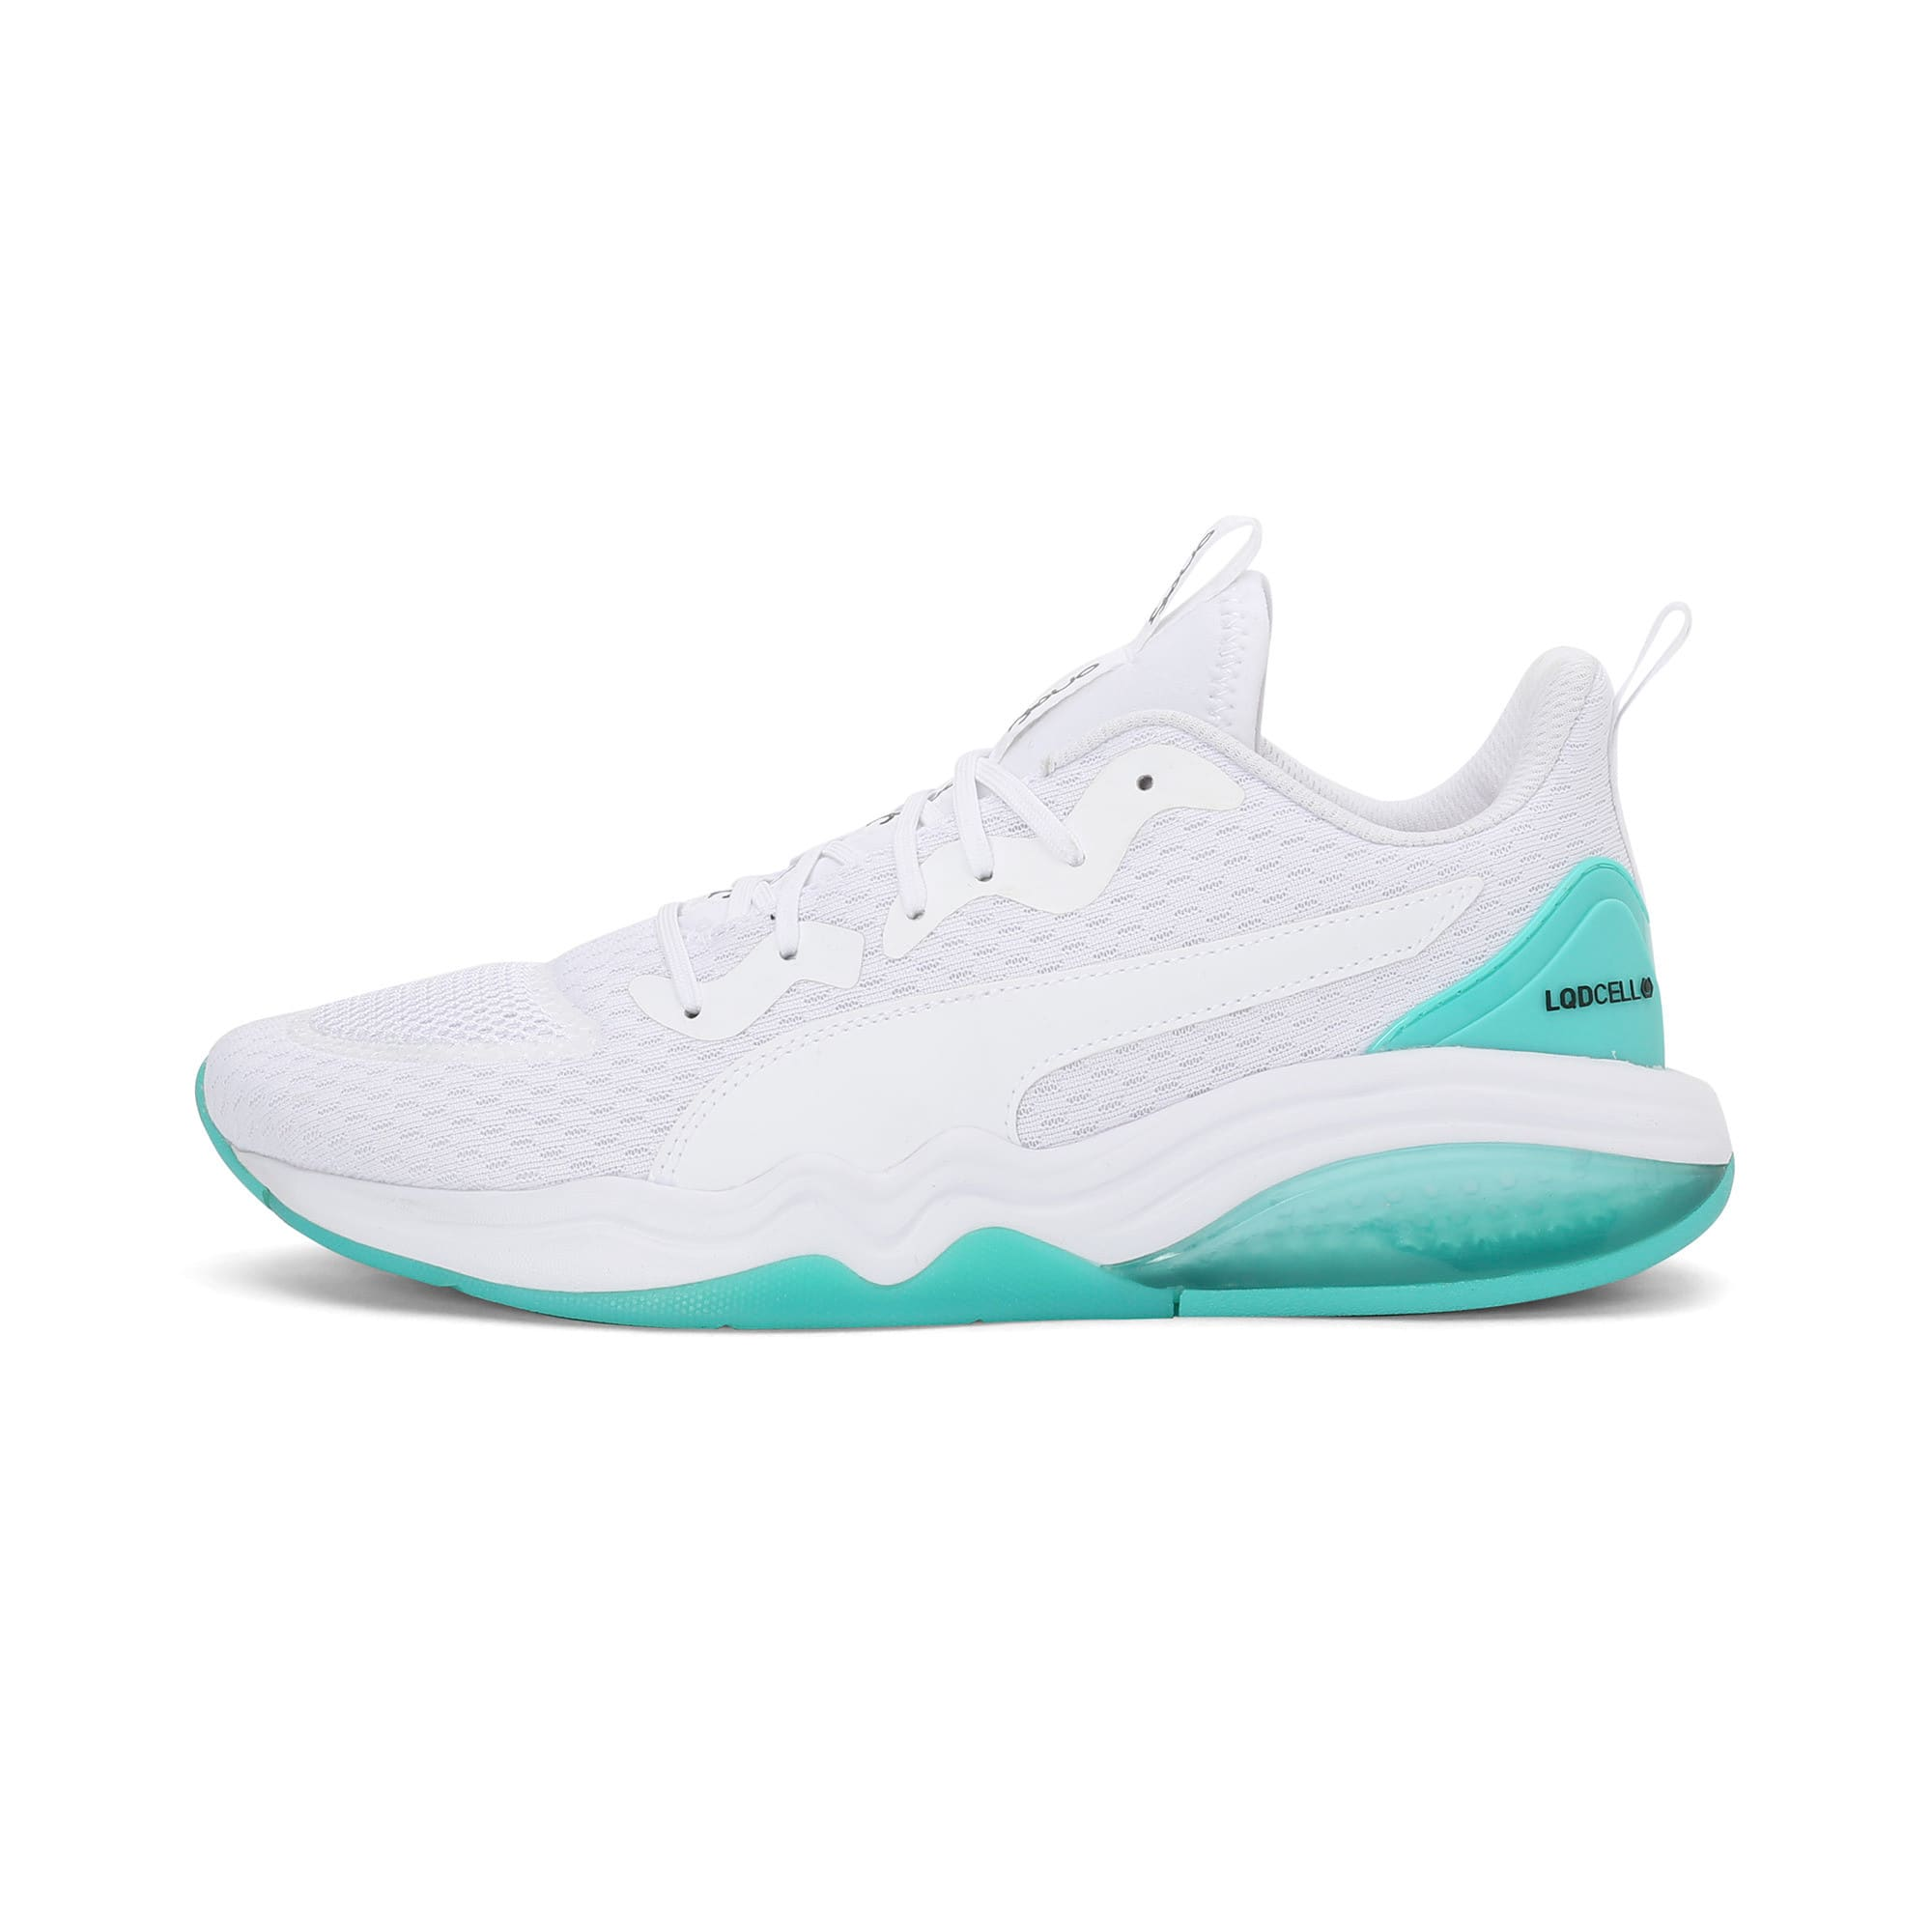 Thumbnail 1 of LQDCELL Tension one8 Men's Training Shoes, Puma White-Blue Turquoise, medium-IND